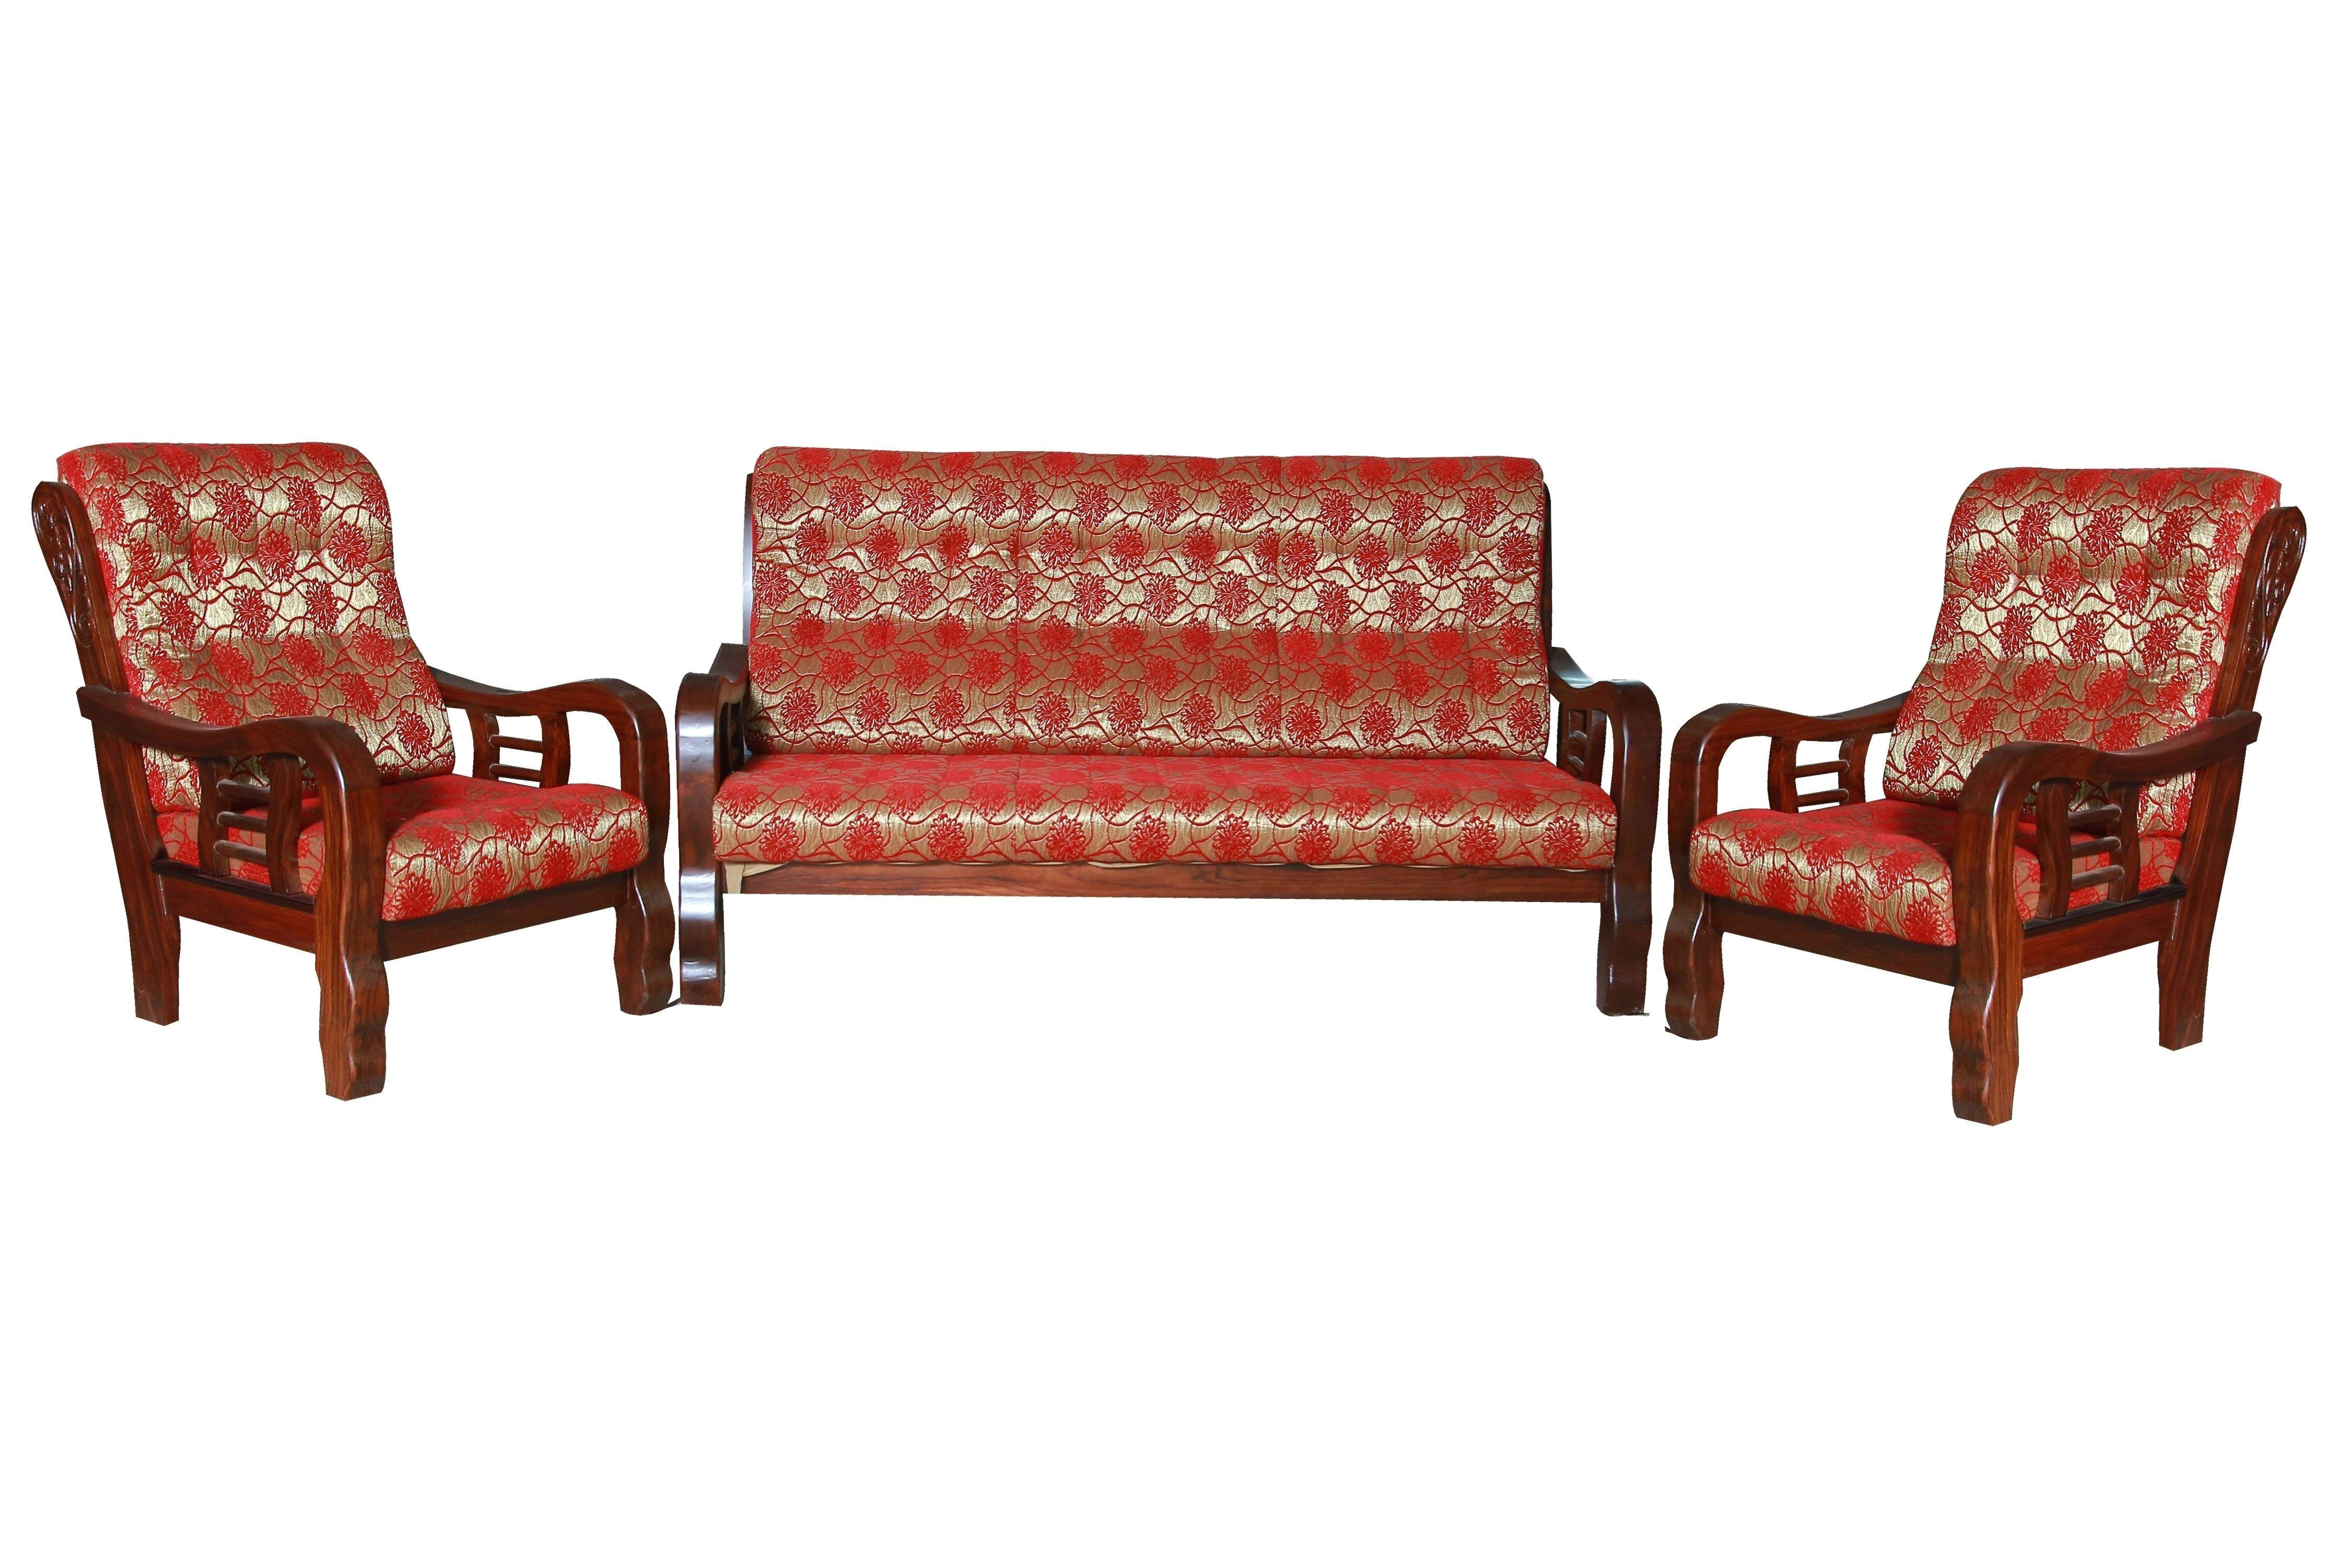 30 rocking chairs for porch unusual outdoor rocking chair cushions lovely wicker outdoor sofa 0d patio